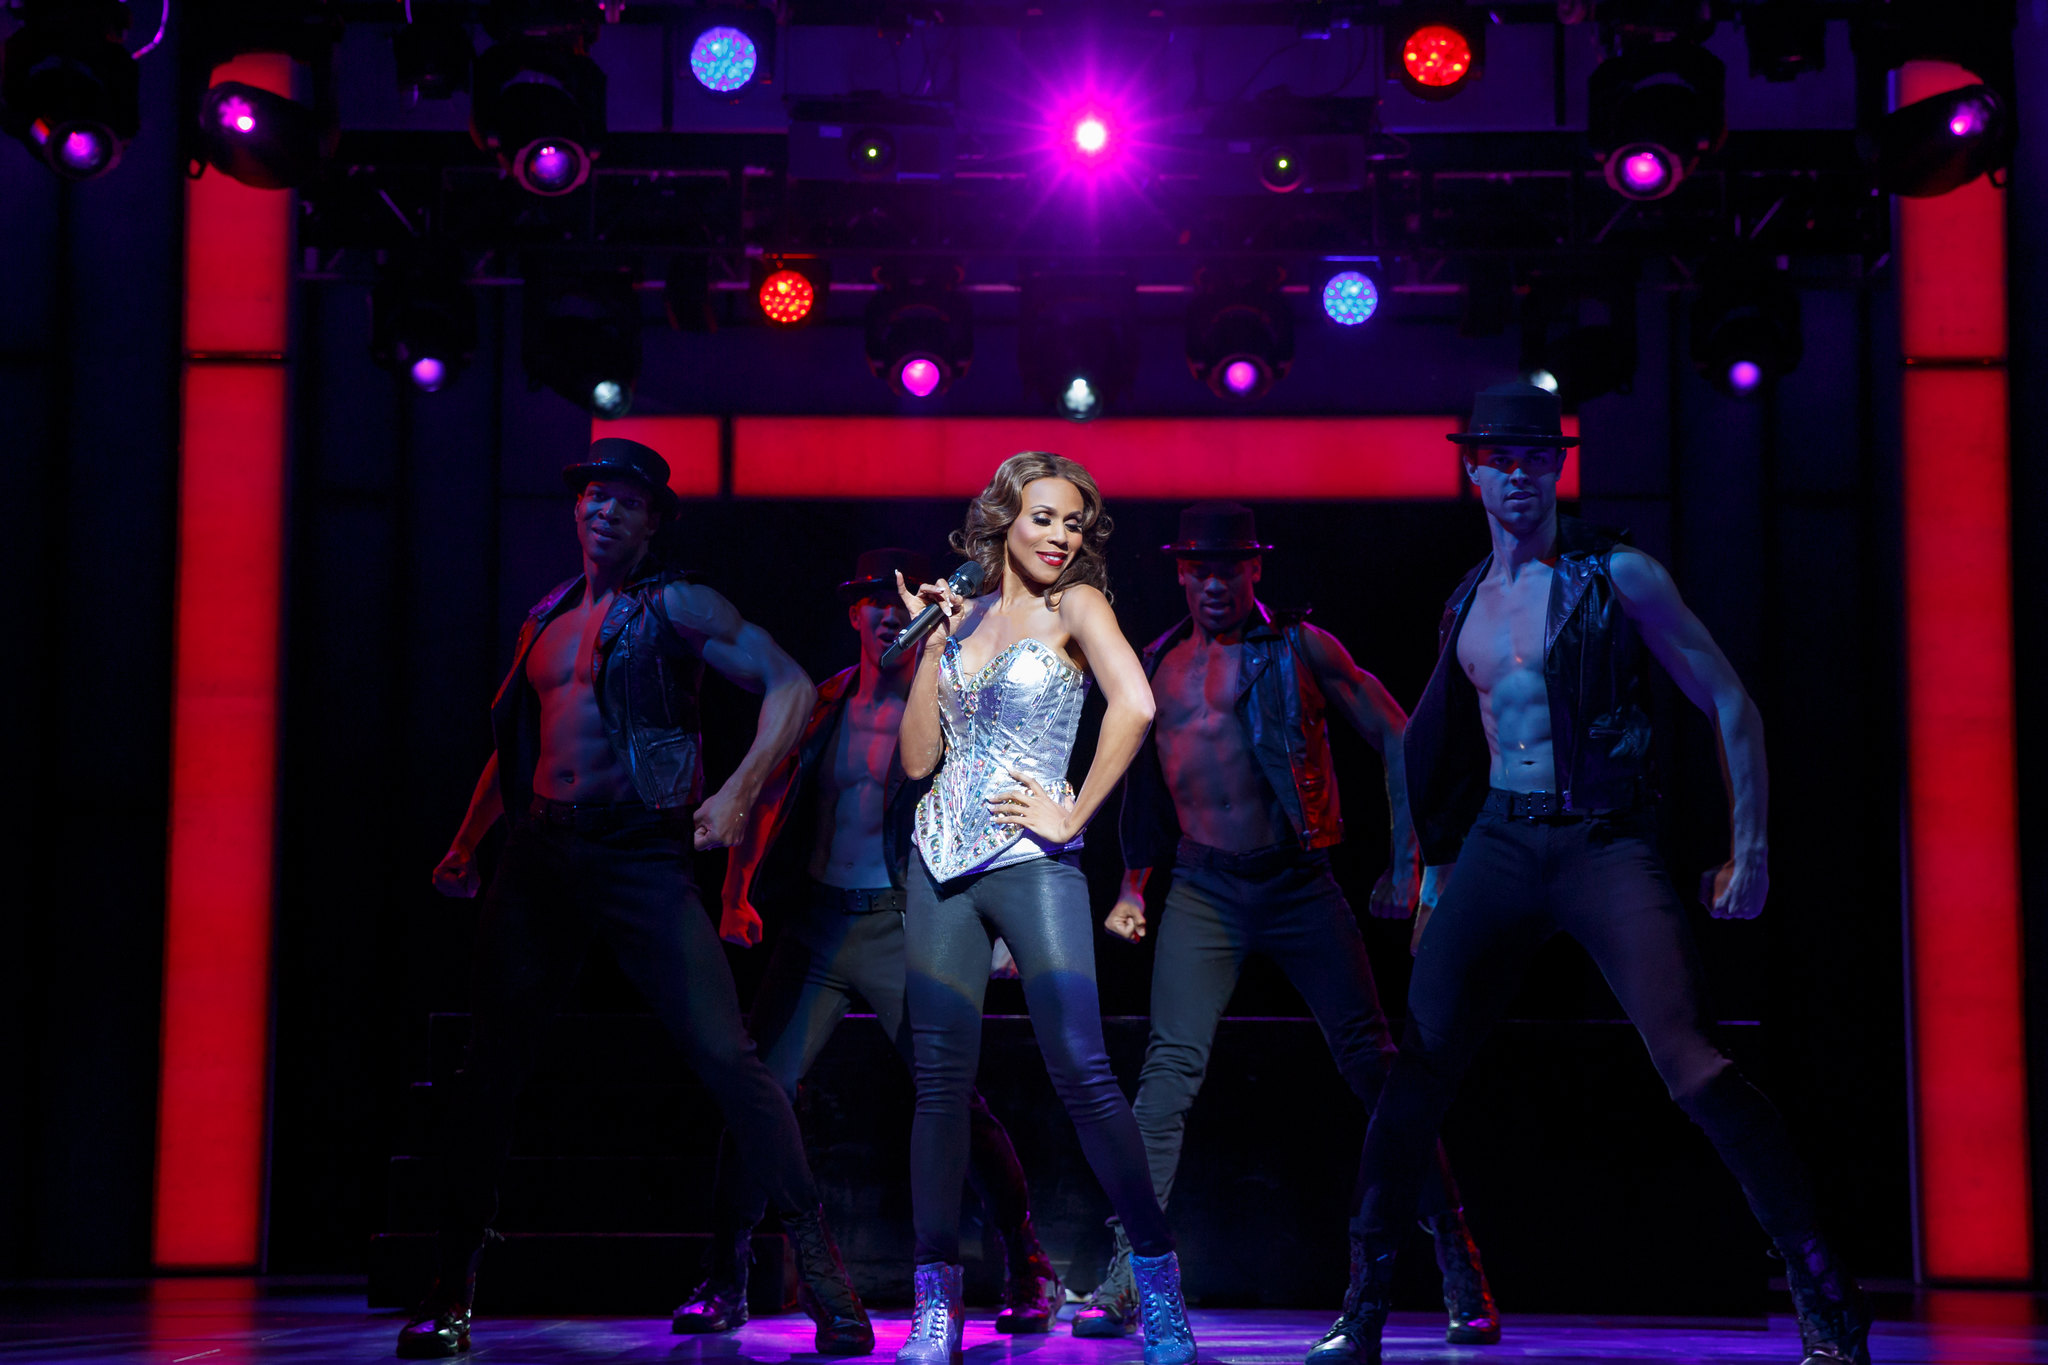 Flint Native Tours with the Cast of Broadway's The Bodyguard